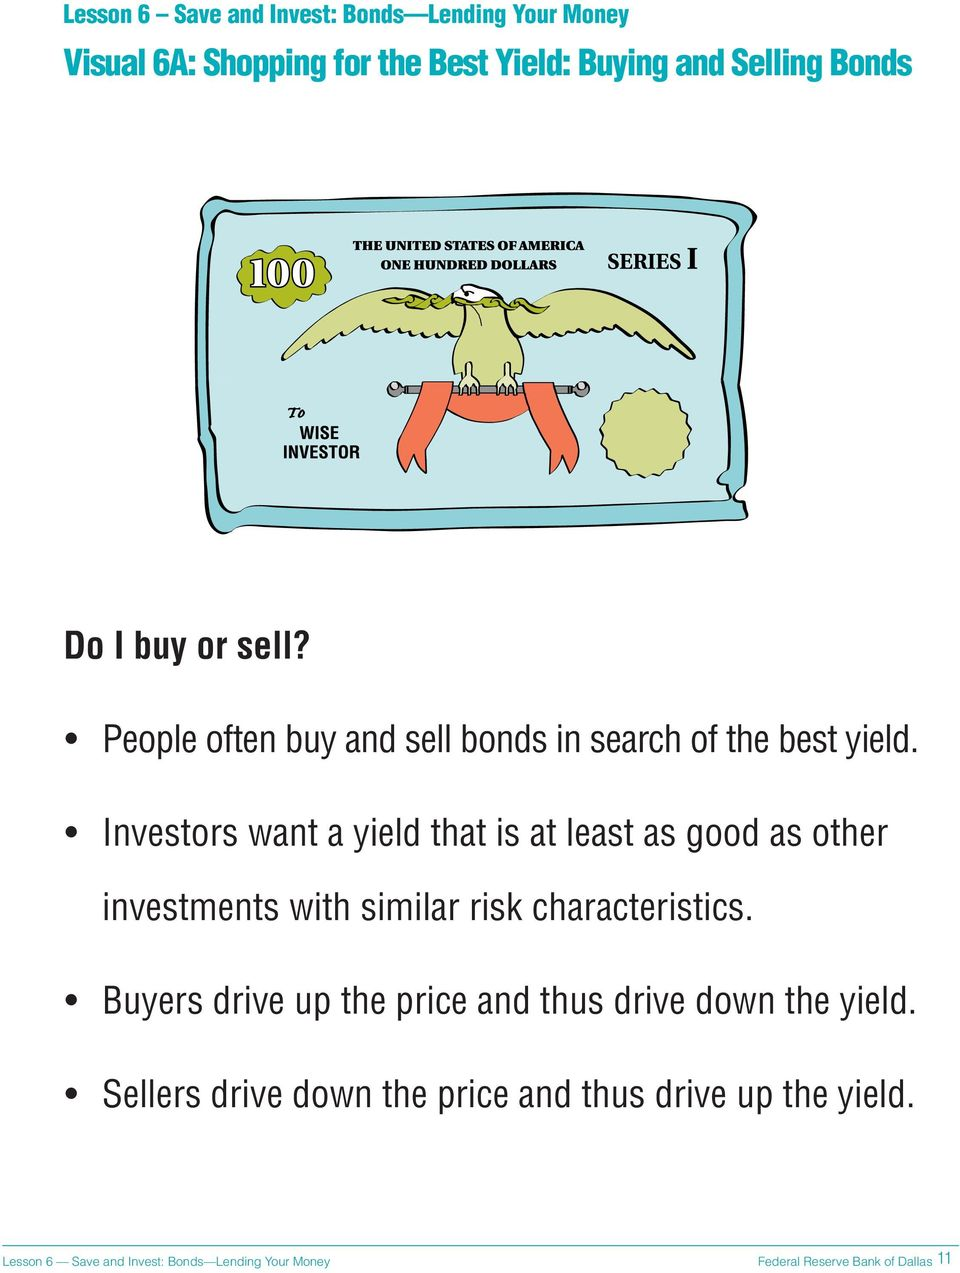 Investors want a yield that is at least as good as other investments with similar risk